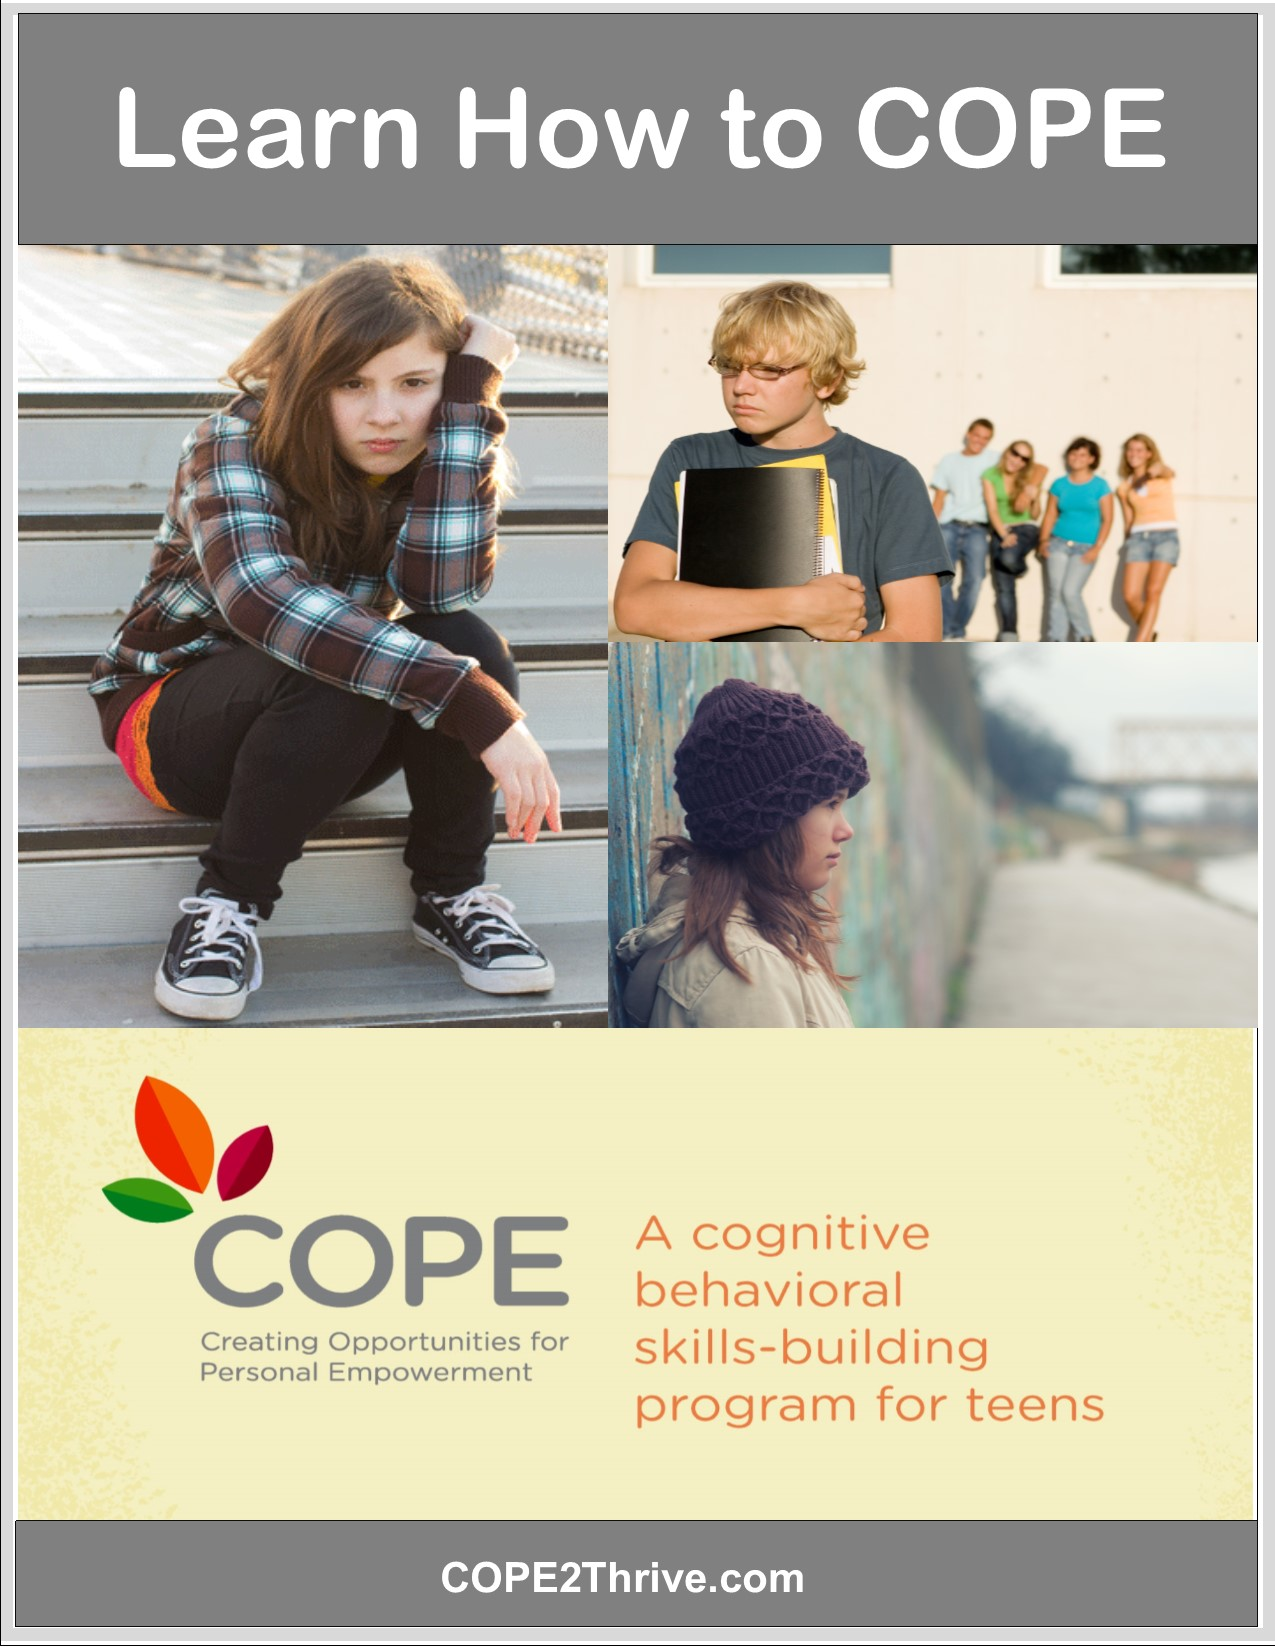 Learn How to COPE Poster Final-2.jpg